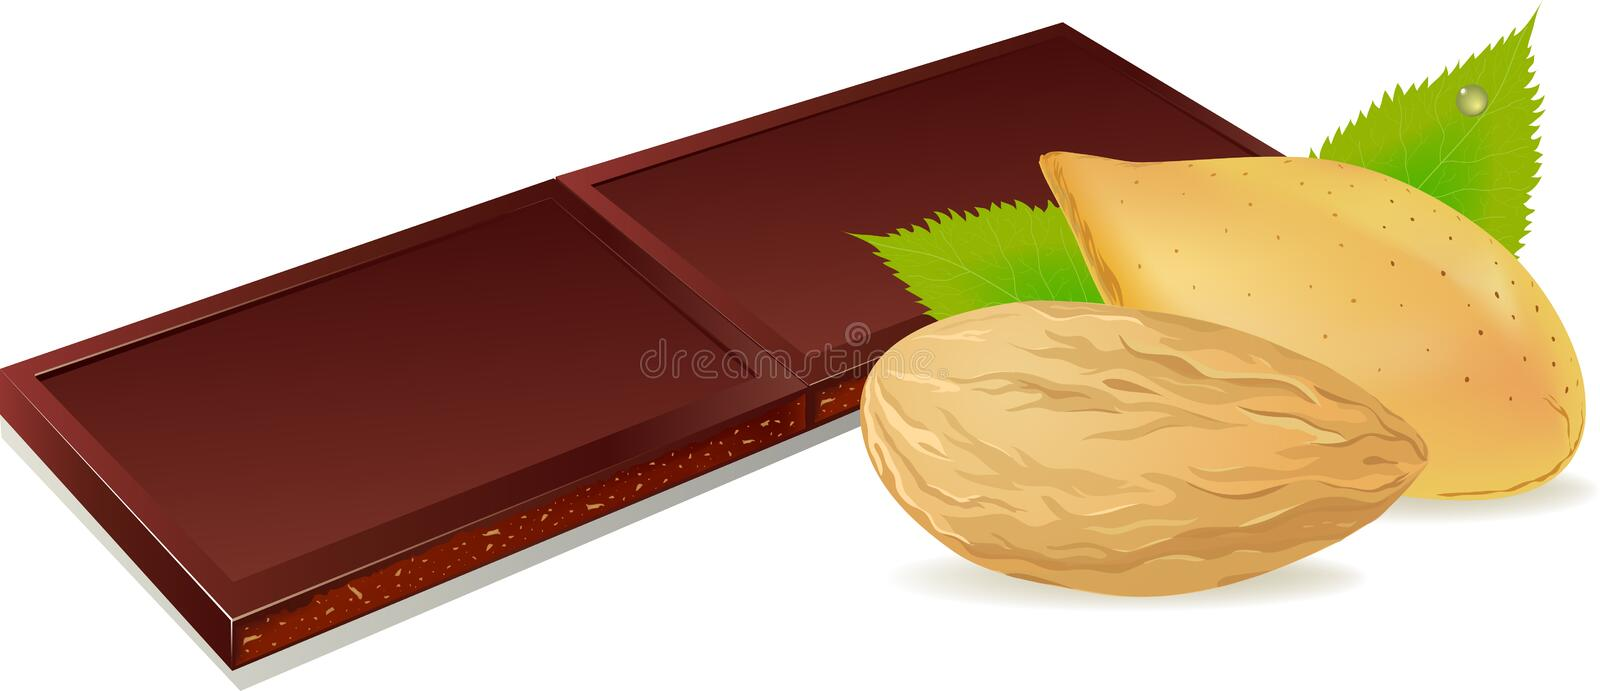 Illustration de vecteur de chocolat et des amandes illustration stock